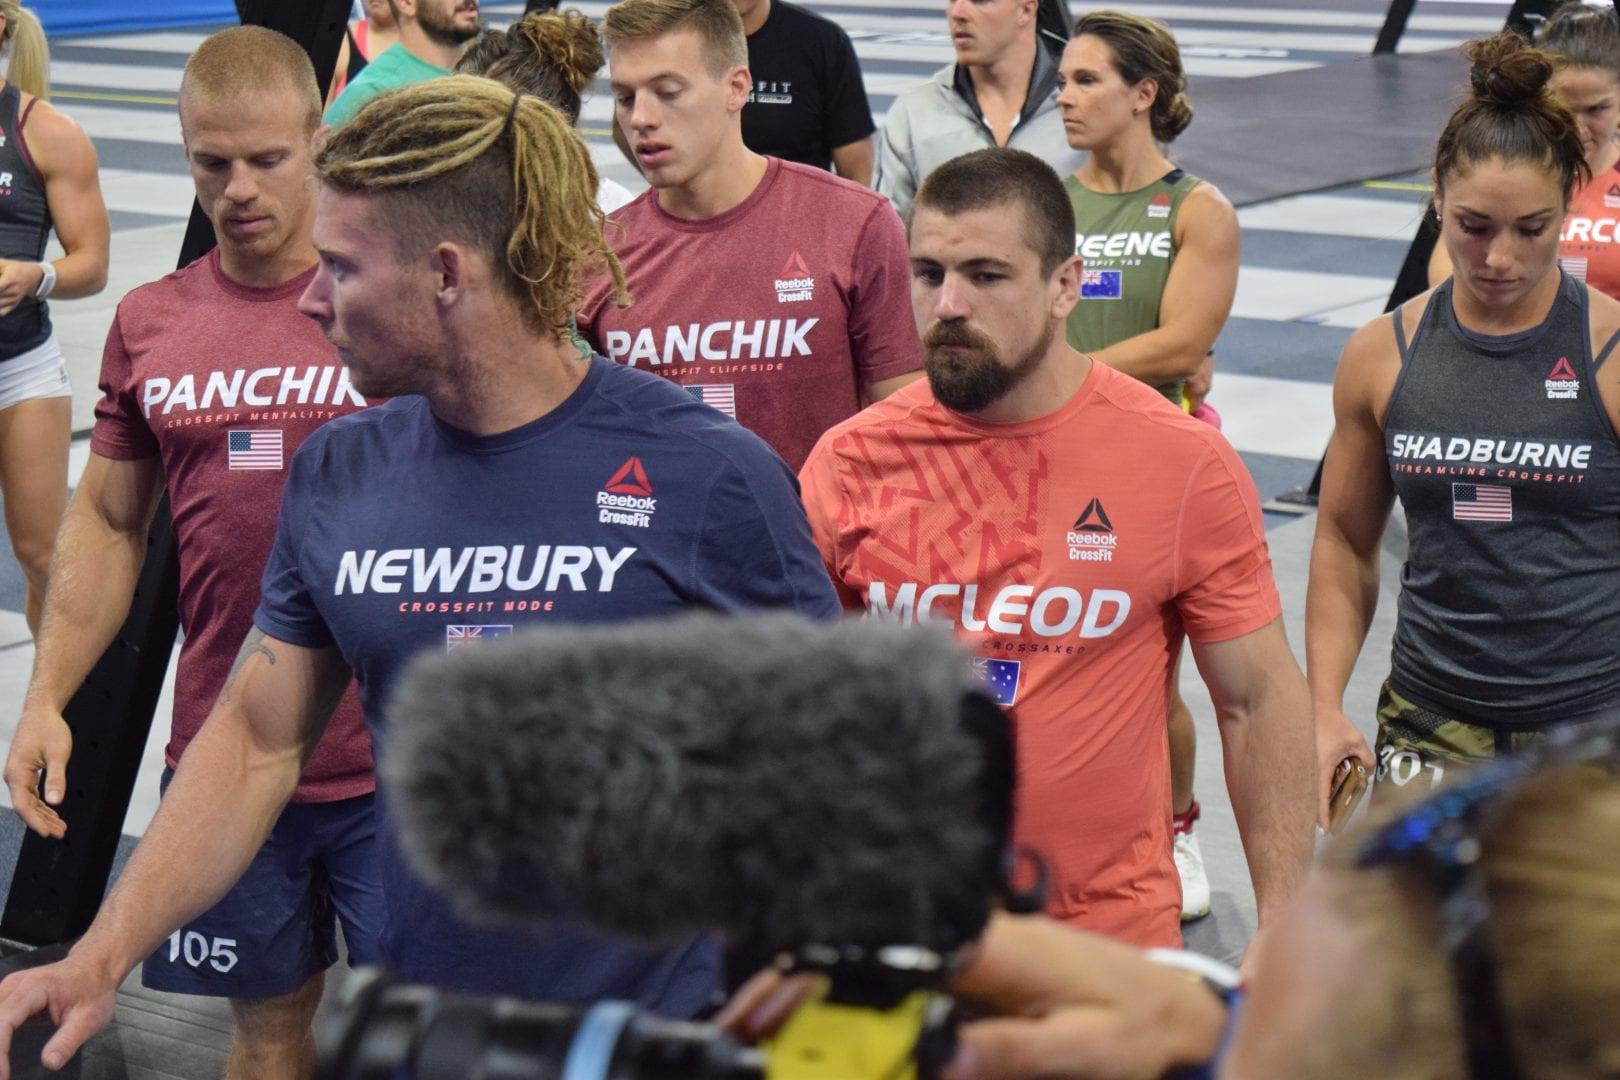 Scott Panchik on the floor of the coliseum on the final day of competition at the 2019 CrossFit Games.